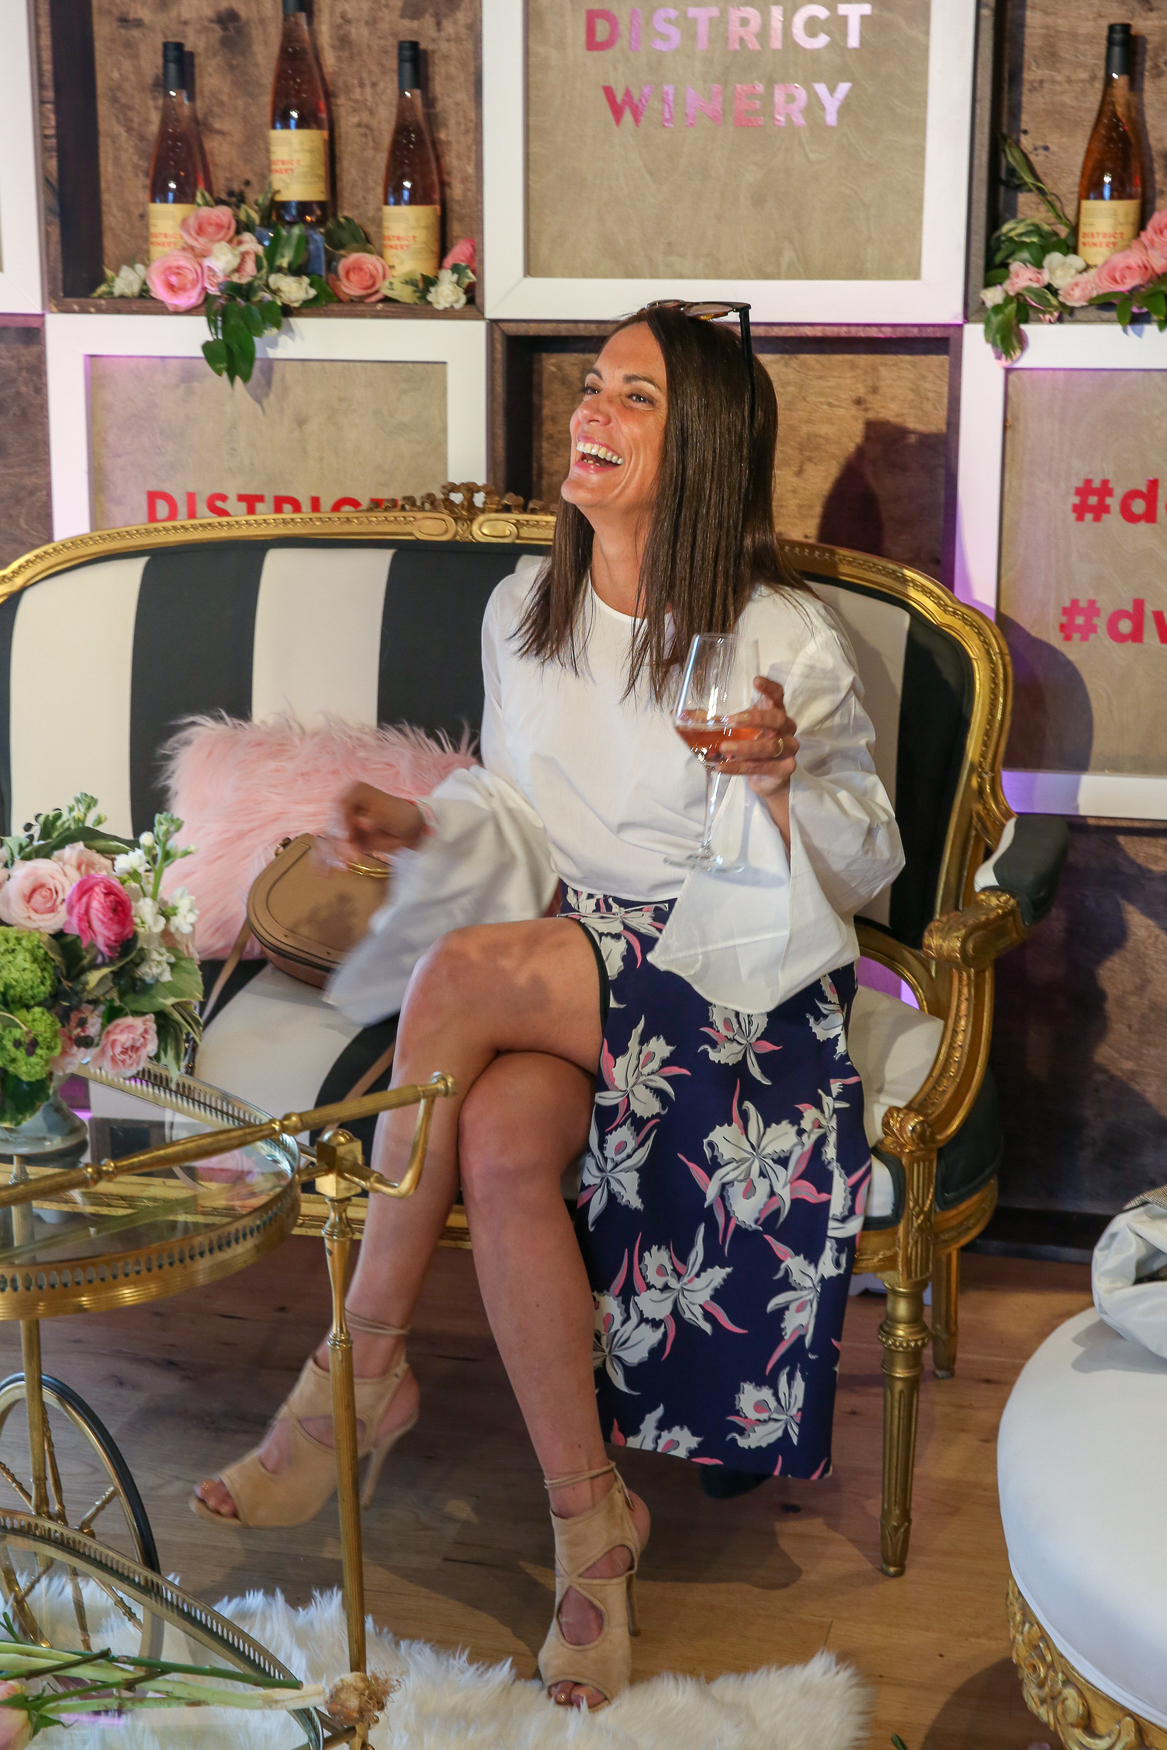 Sylvia Colella always exudes French Girl Cool, but she outdid herself with the orchid skirt and structured top.{ }(Amanda Andrade-Rhoades/DC Refined)